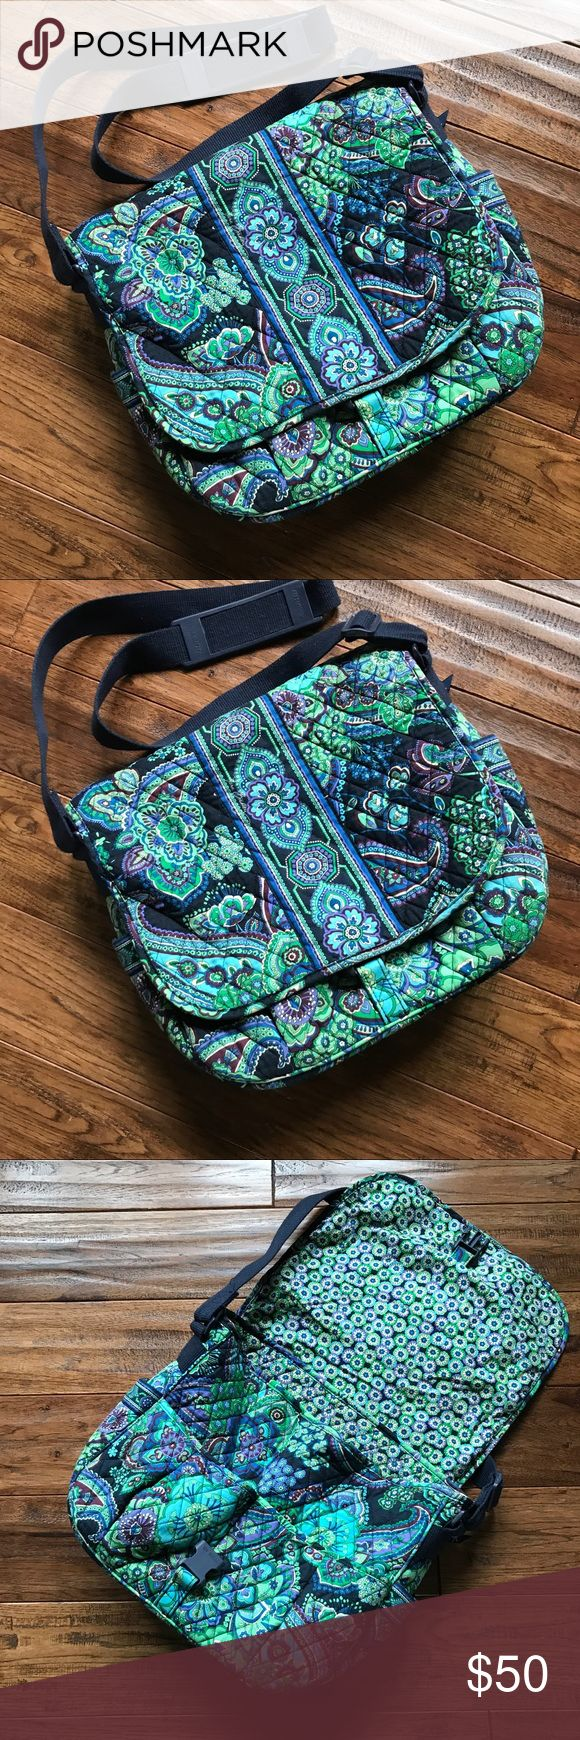 💙💚Vera Bradley Laptop Messanger in Blue Rhapsody Lightly Used. In Good Condition. Great for Back to School!! 🍎✏️📚 Vera Bradley Bags Laptop Bags